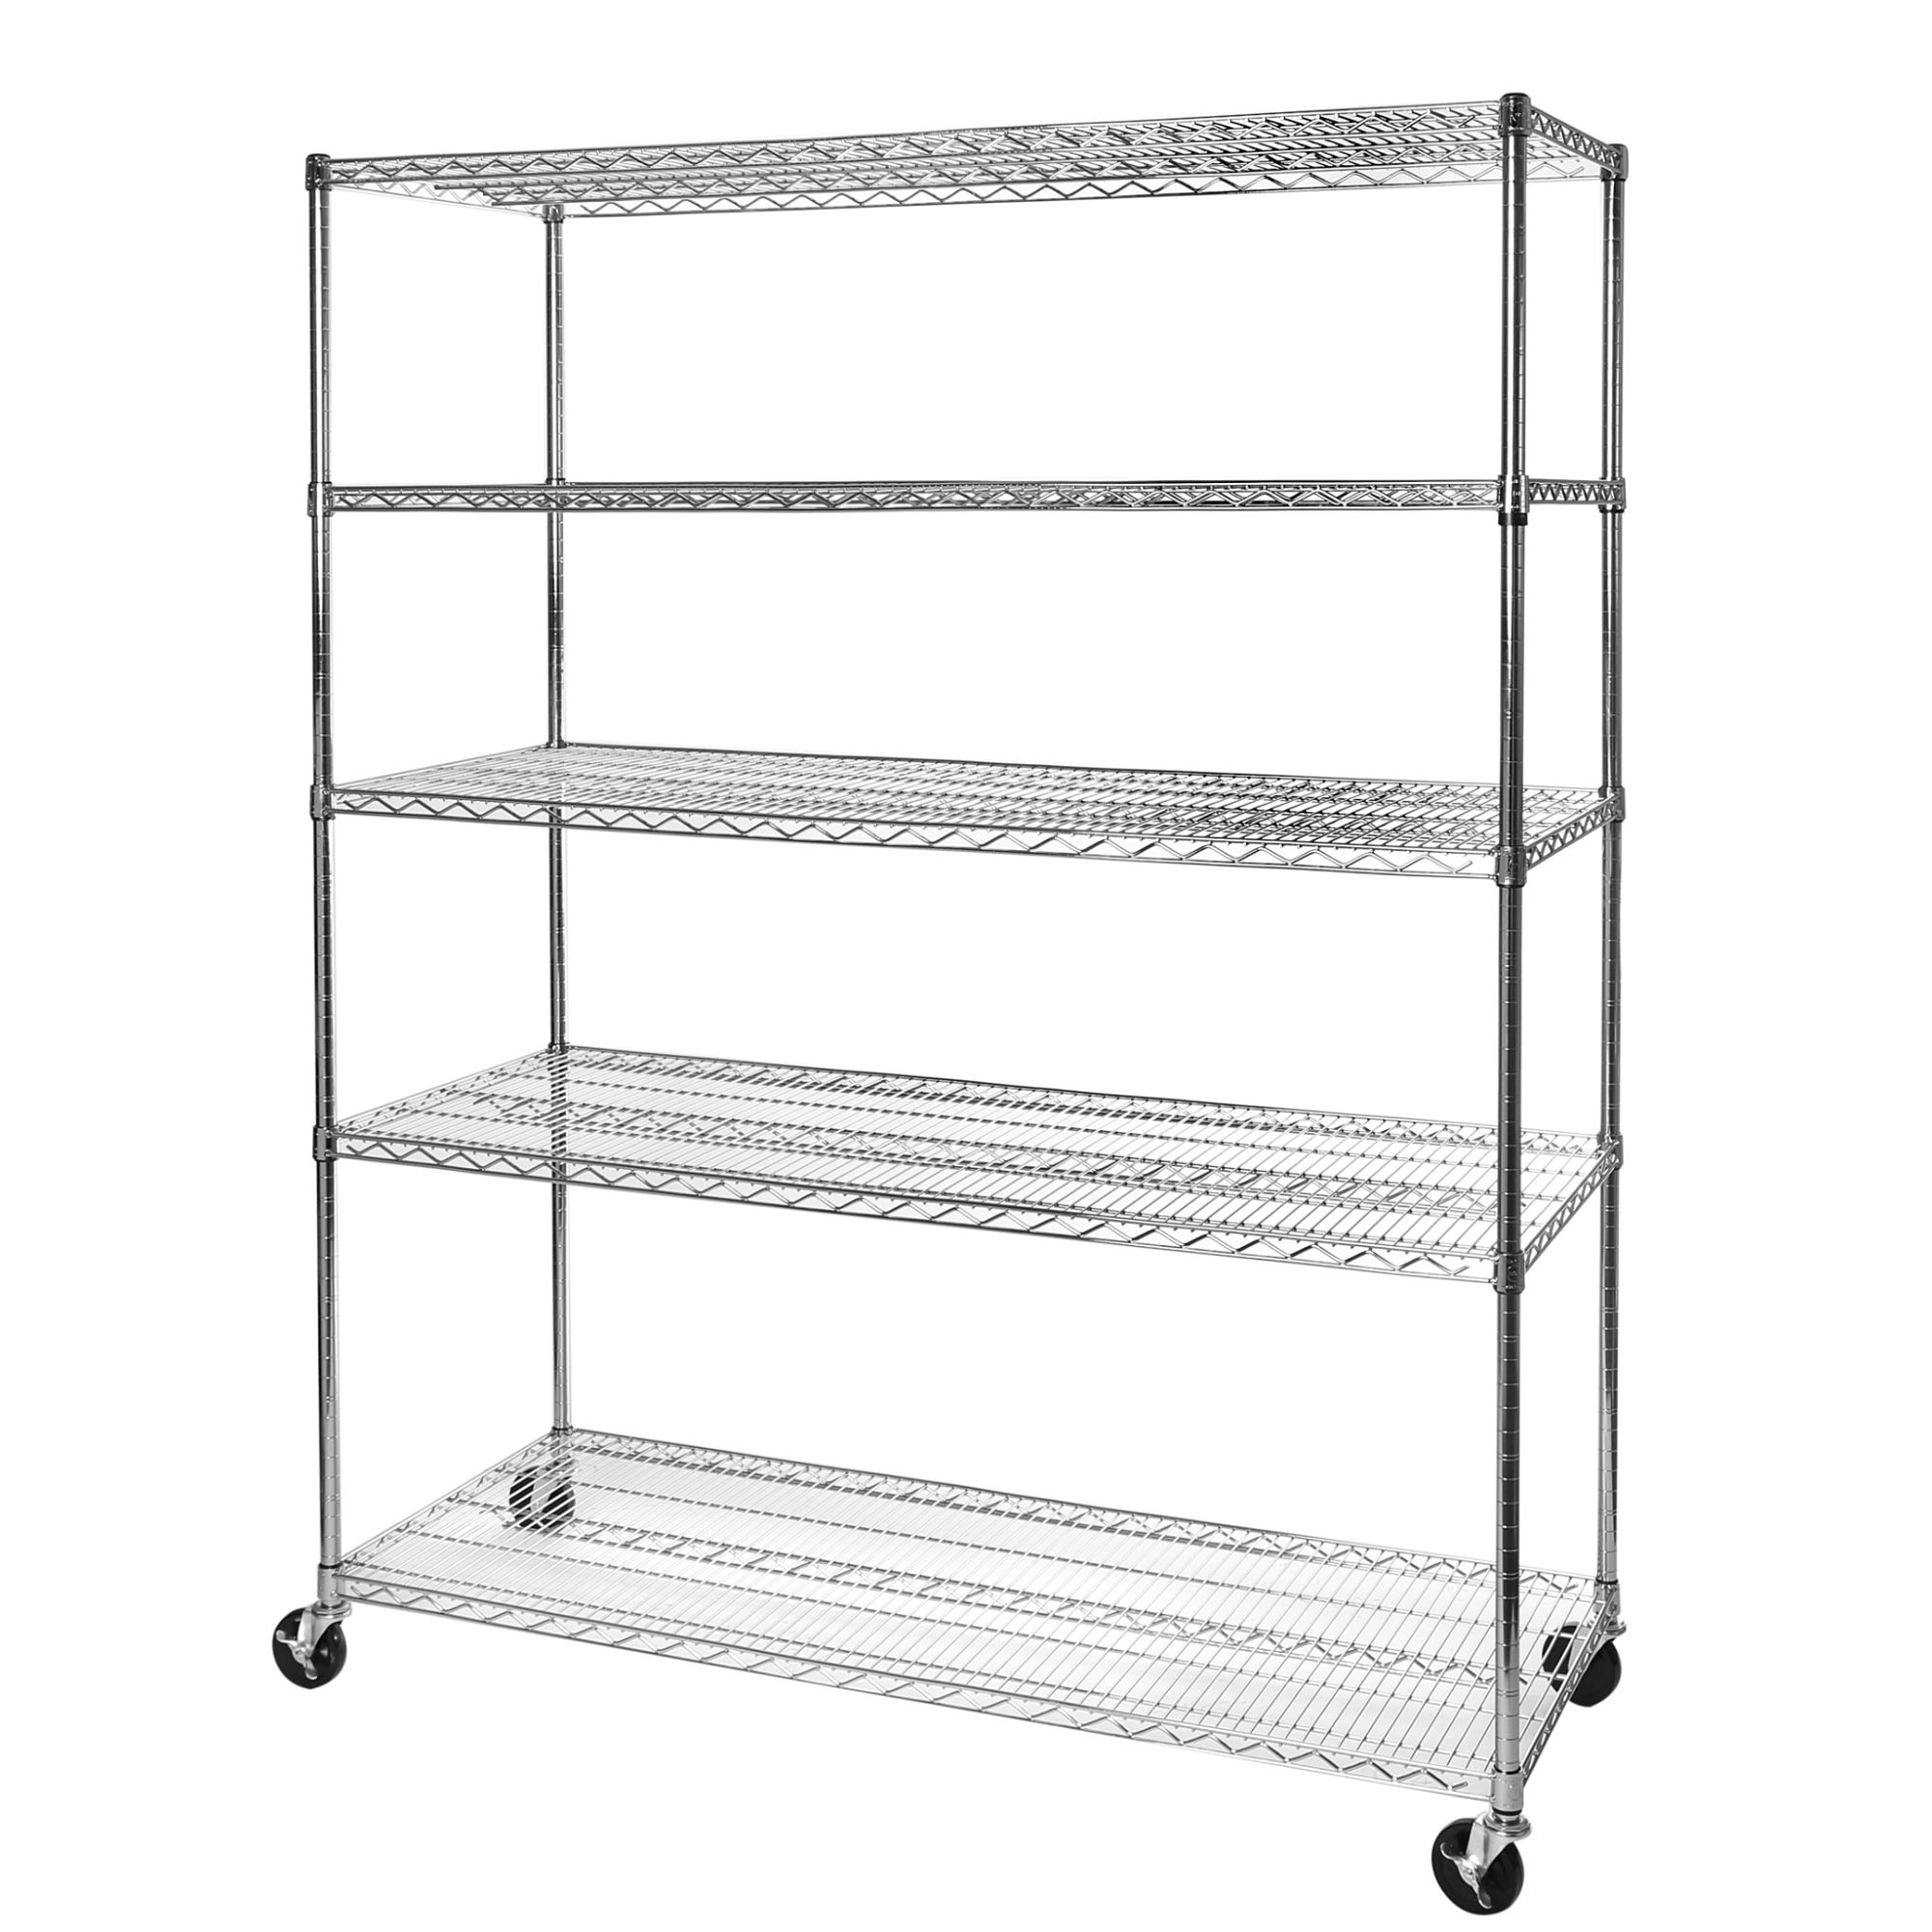 "24""D x 60""W x 72""H Commercial 5-Tier Steel Wire Shelving System by Seville Classics"